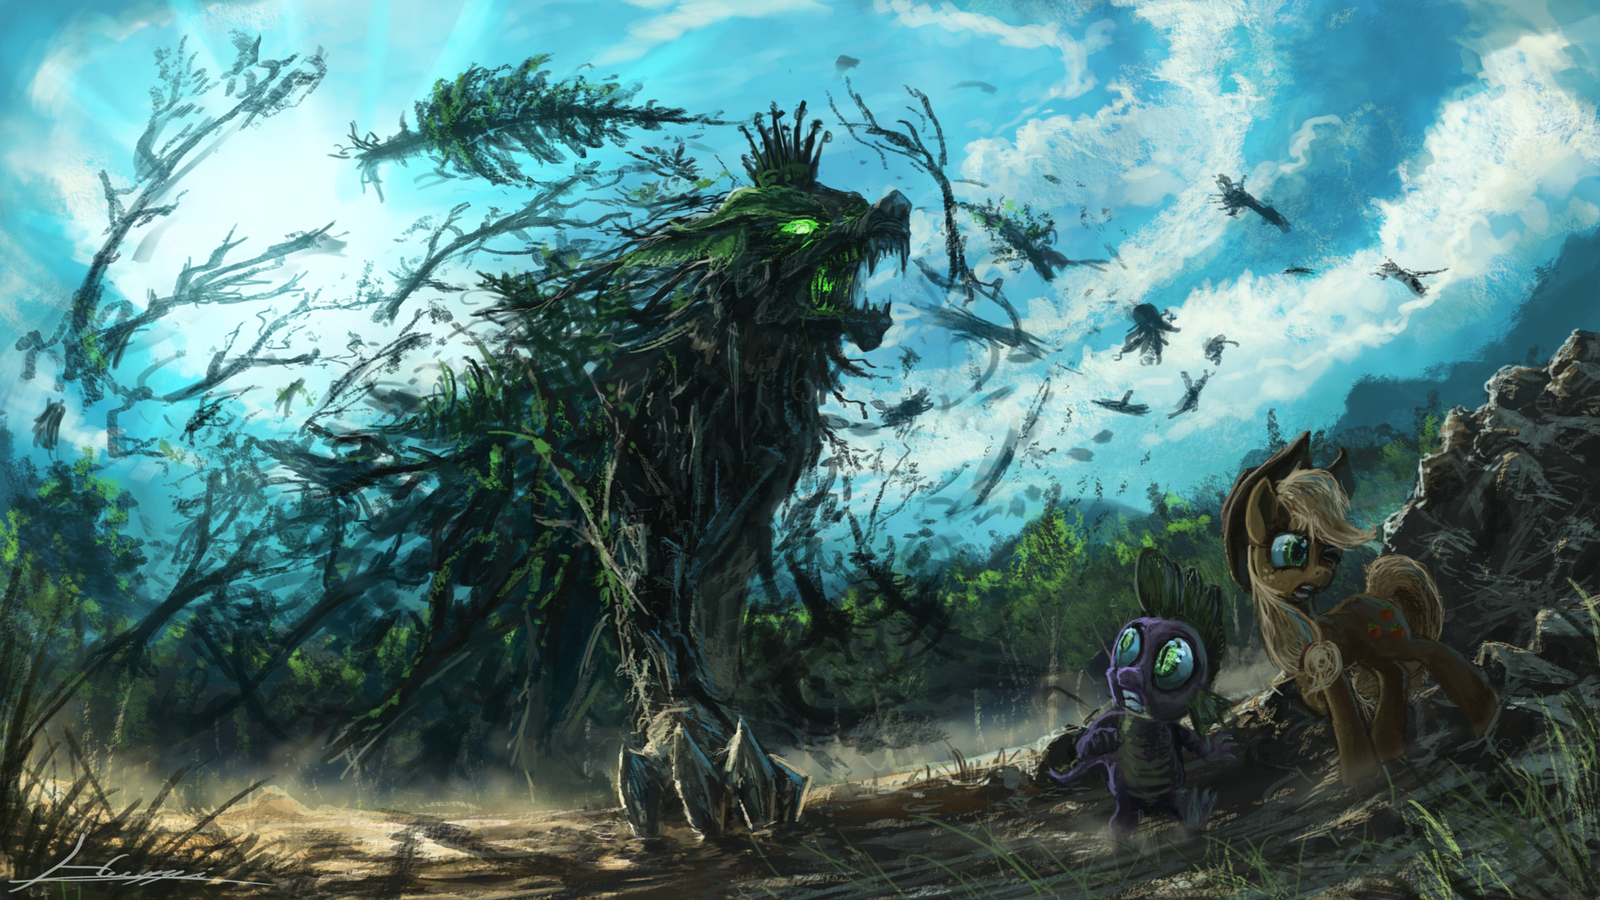 King of the Forest by Huussii